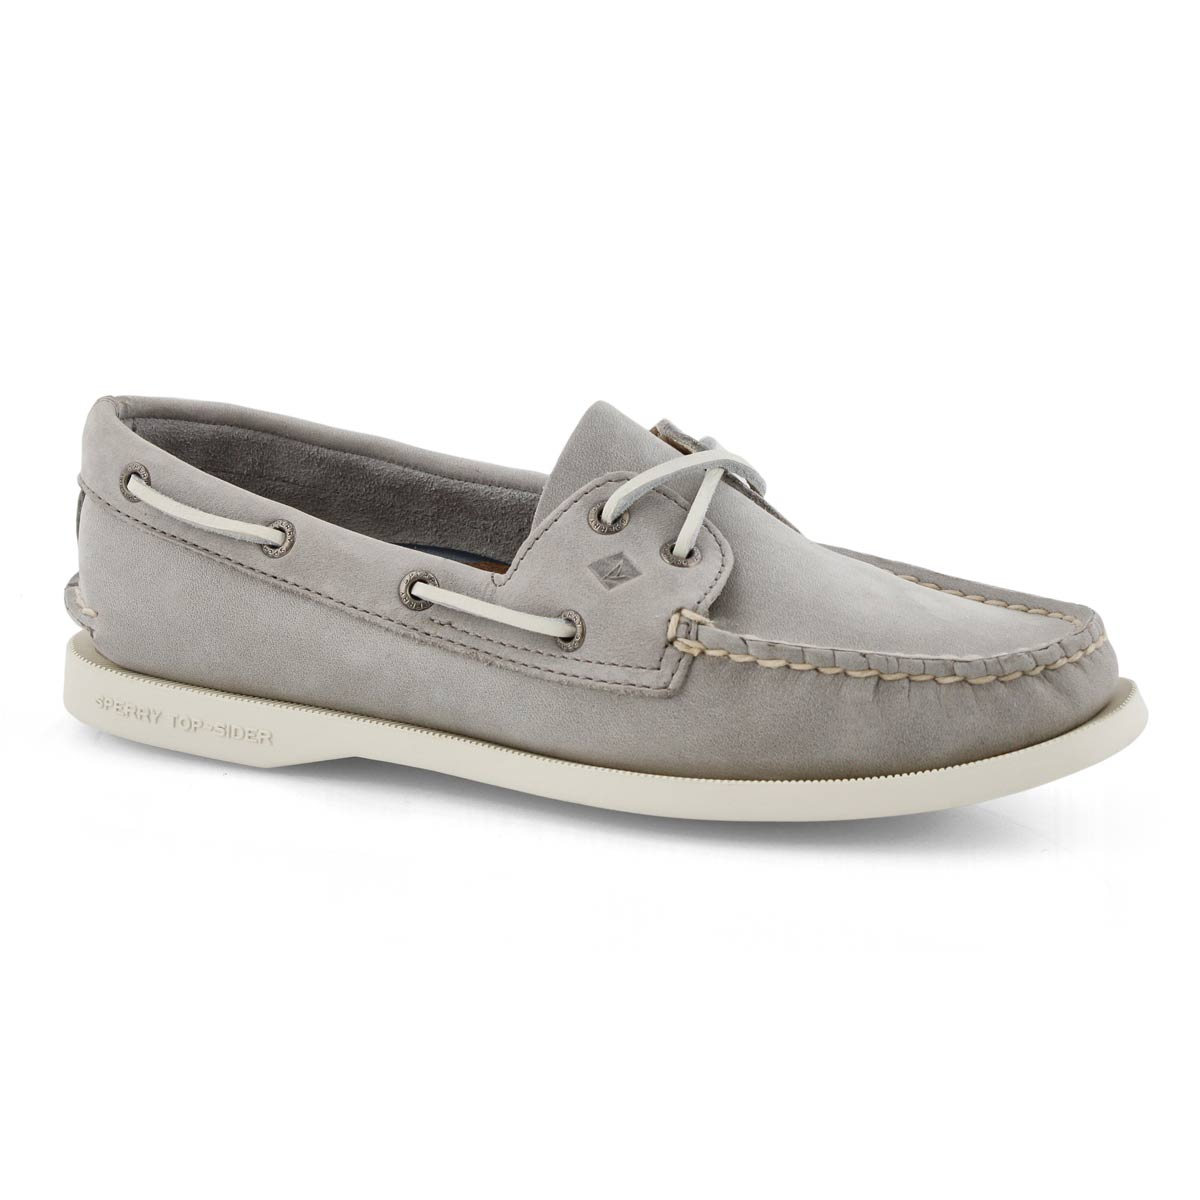 Women's AUTHENTIC ORIGINAL 2-eye grey boat shoes